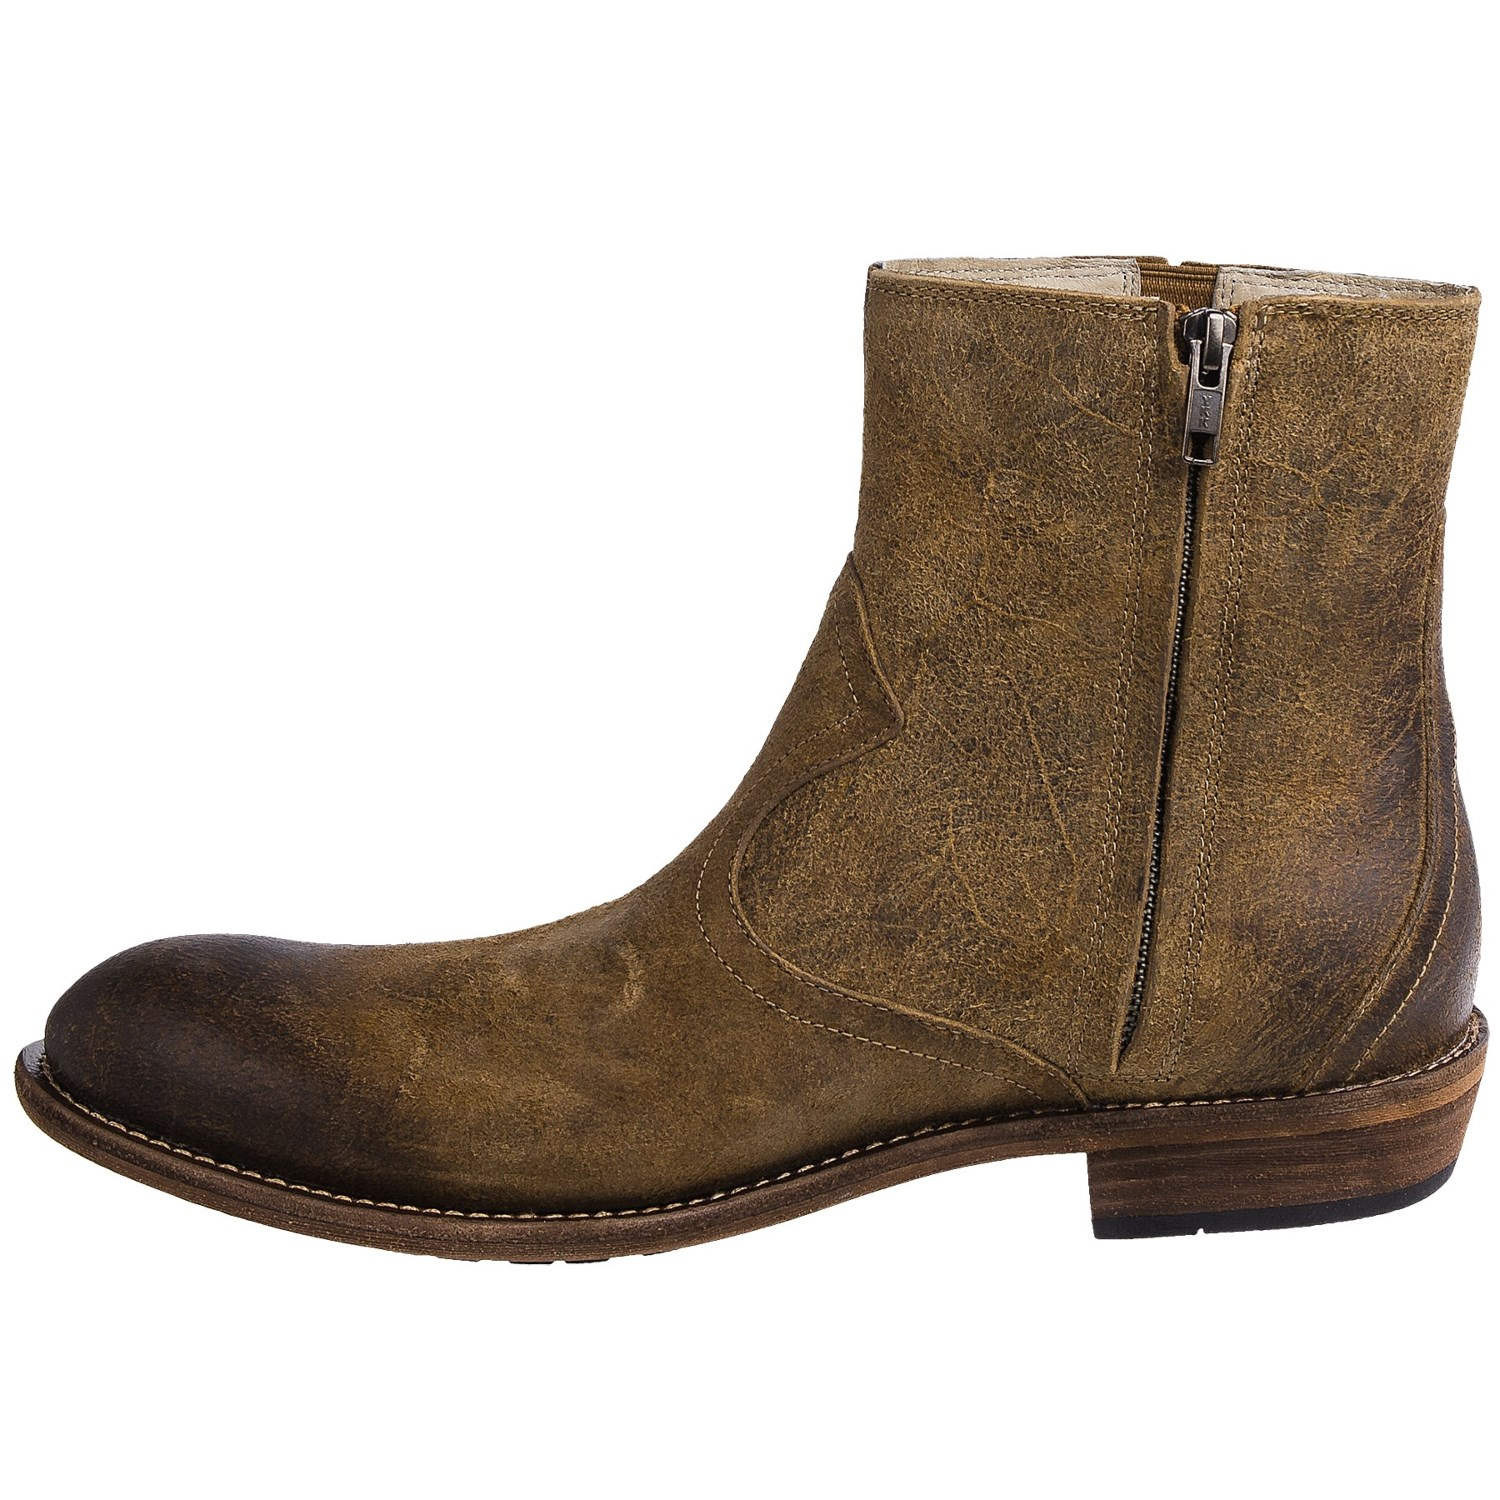 Men's Boots at Macy's come in all styles and sizes. Shop Men's Boots and get free shipping w/minimum purchase! Chelsea boots are a classic pull-on style. These ankle boots feature elastic side panels and round toes. Invest in a pair with a rubber sole to help ensure you can wear them during rain or snow.